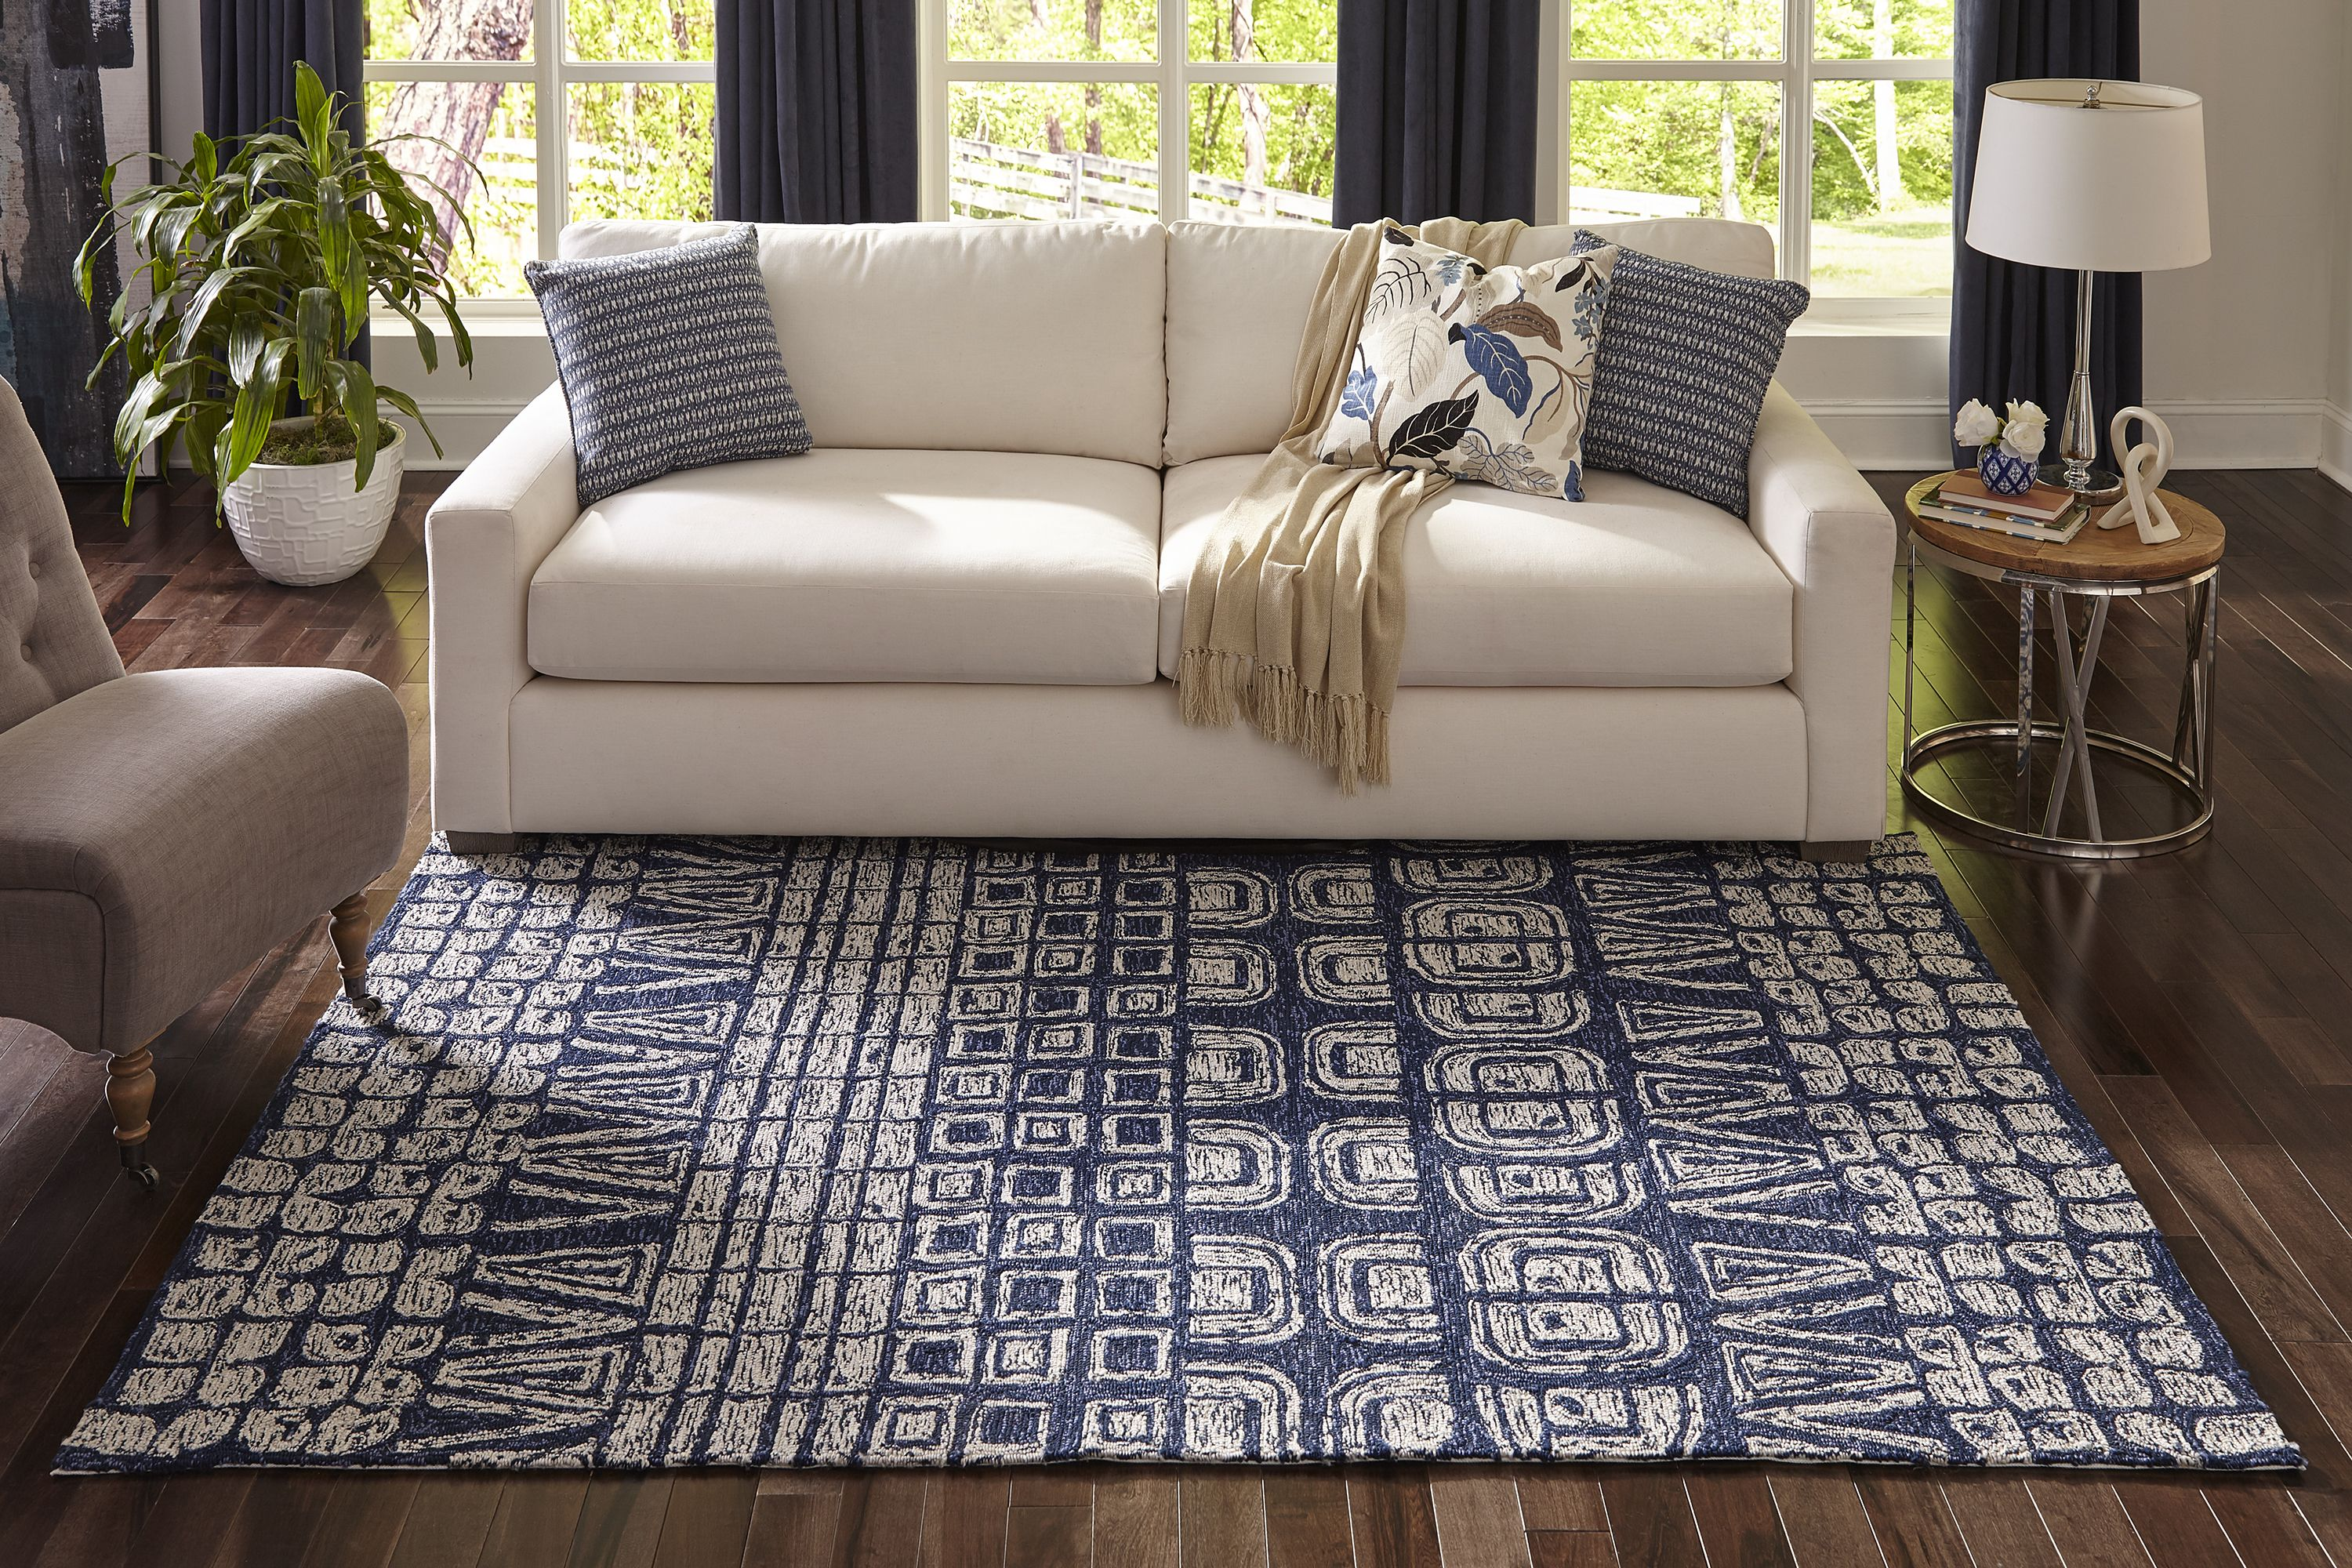 Choosing The Right Size Rug Living Room Spaces Rugs In Living Room Living Room Spaces Apartment Decor